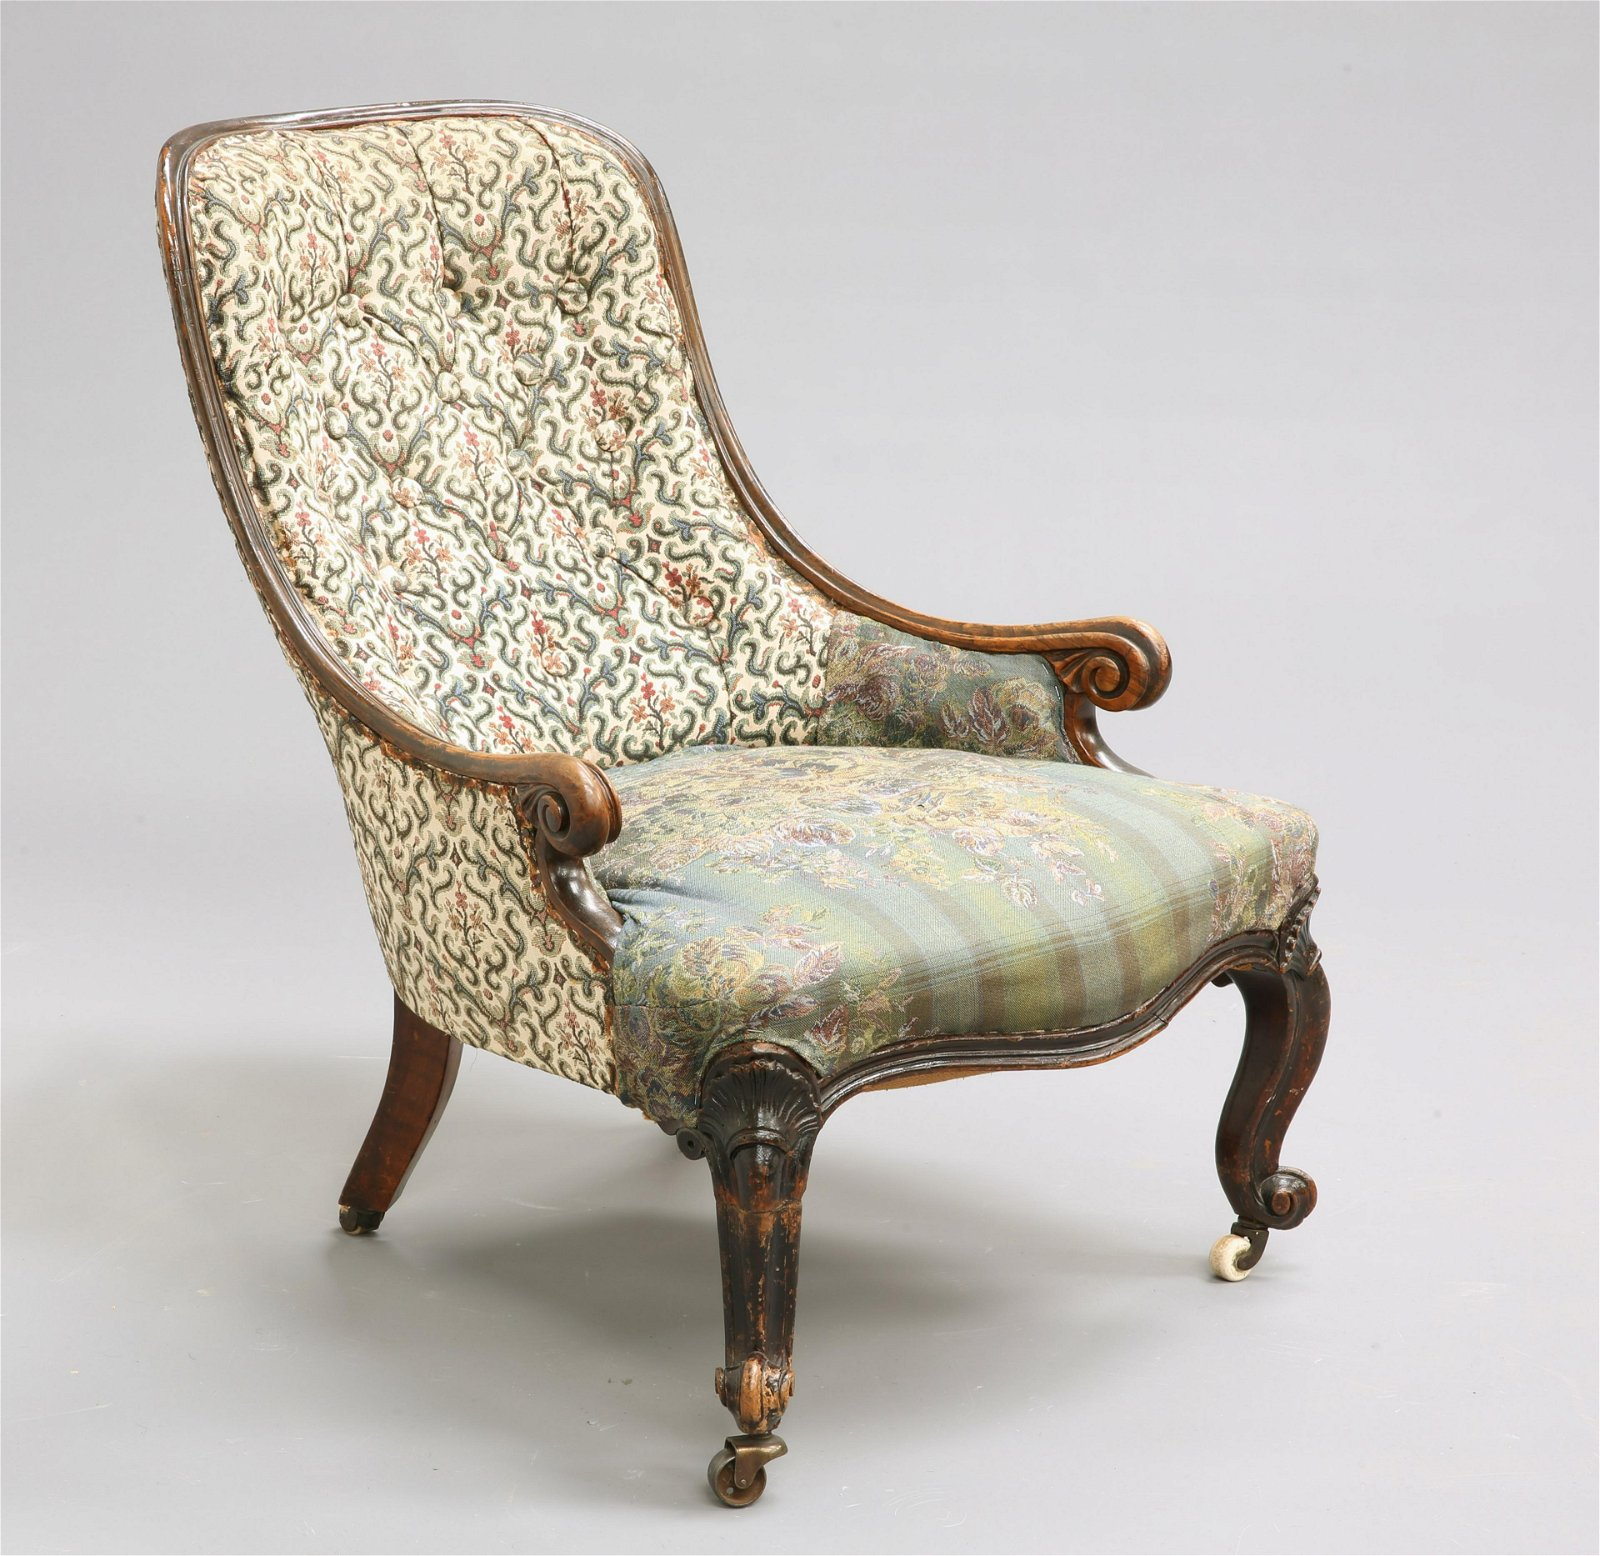 A VICTORIAN SIMULATED ROSEWOOD PARLOUR CHAIR, with